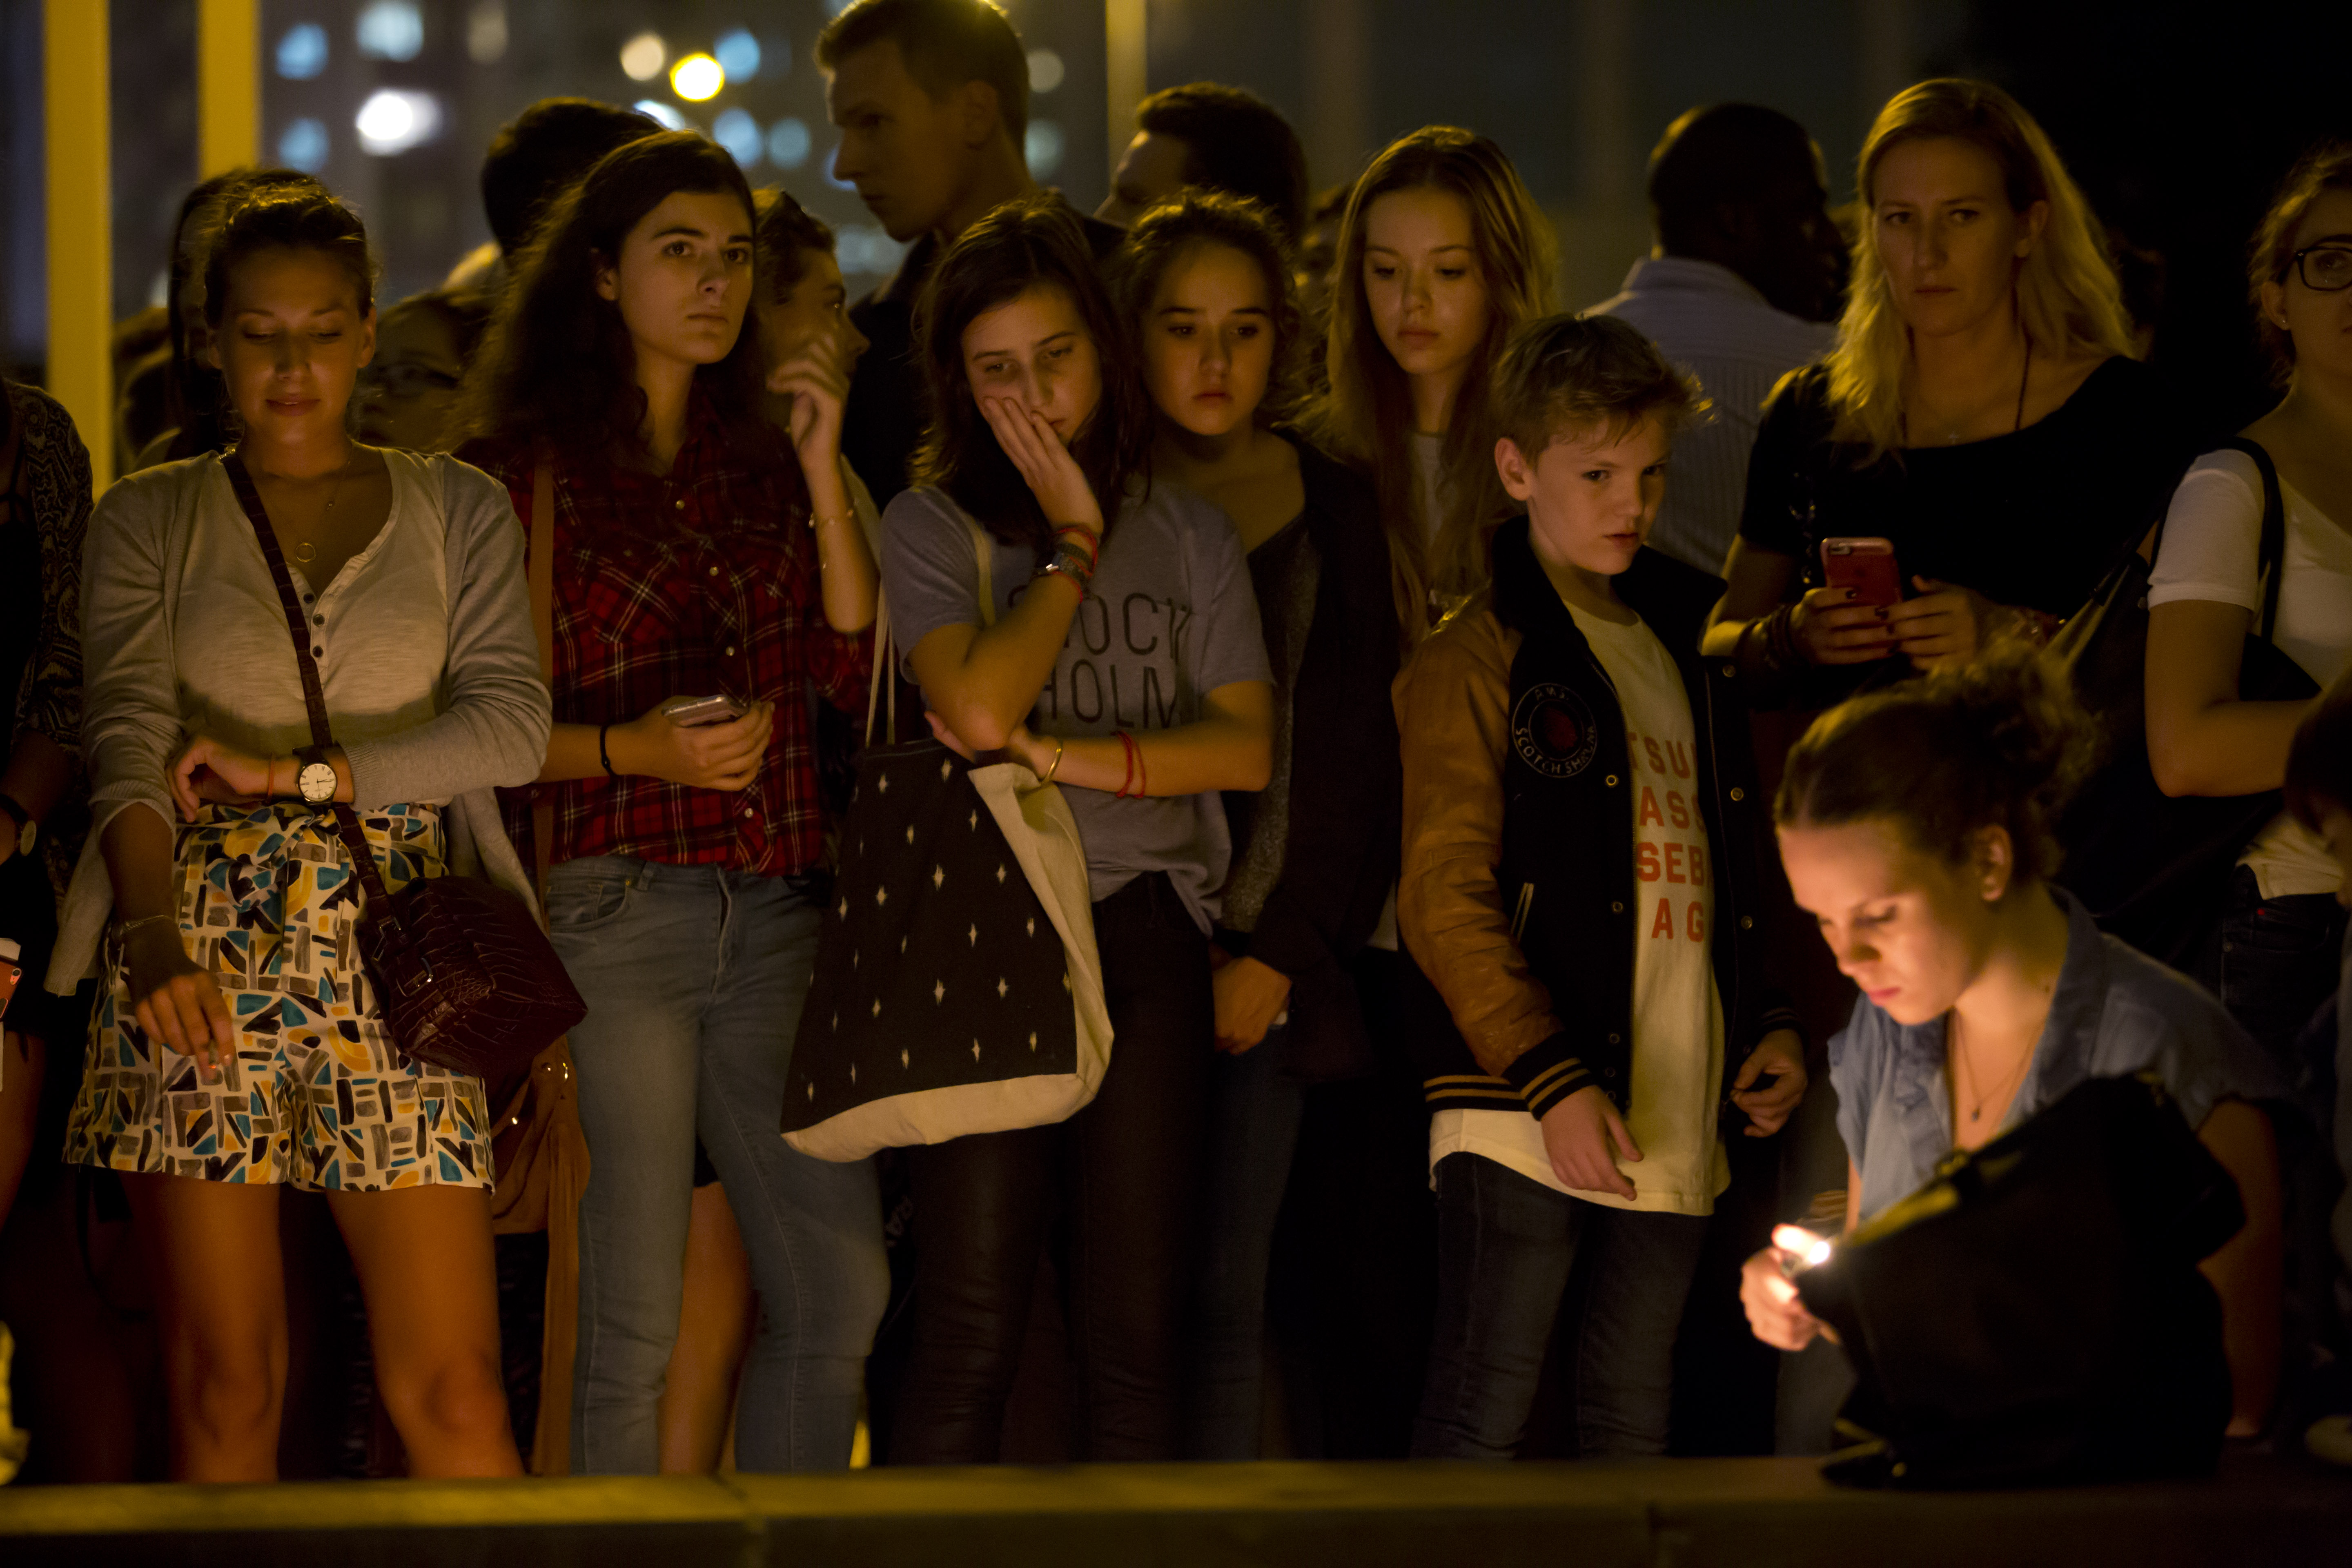 People gather in Hong Kong to mourn for the victims killed in Paris, on Nov. 14, 2015.